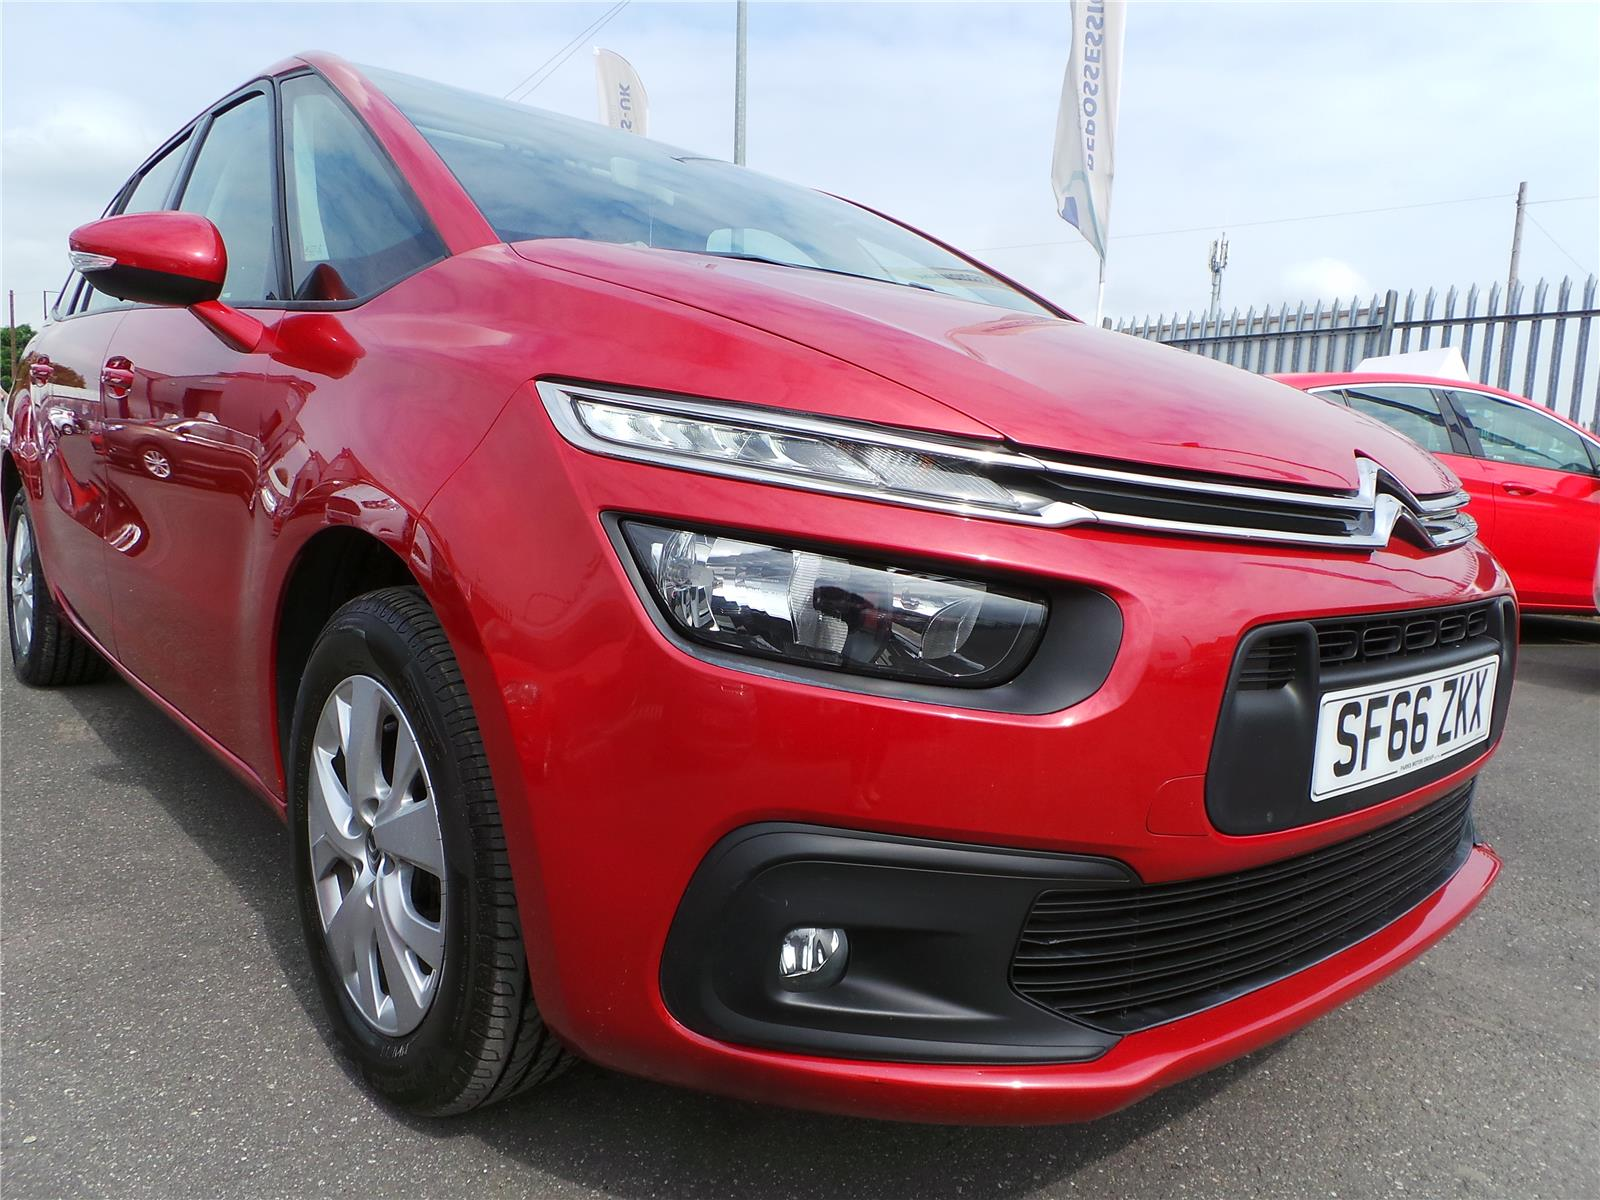 2017 CITROEN C4 PICASSO GRAND BLUEHDI TOUCH EDITION S/ 1560 DIESEL AUTOMATIC 6 Speed 5 DOOR MPV